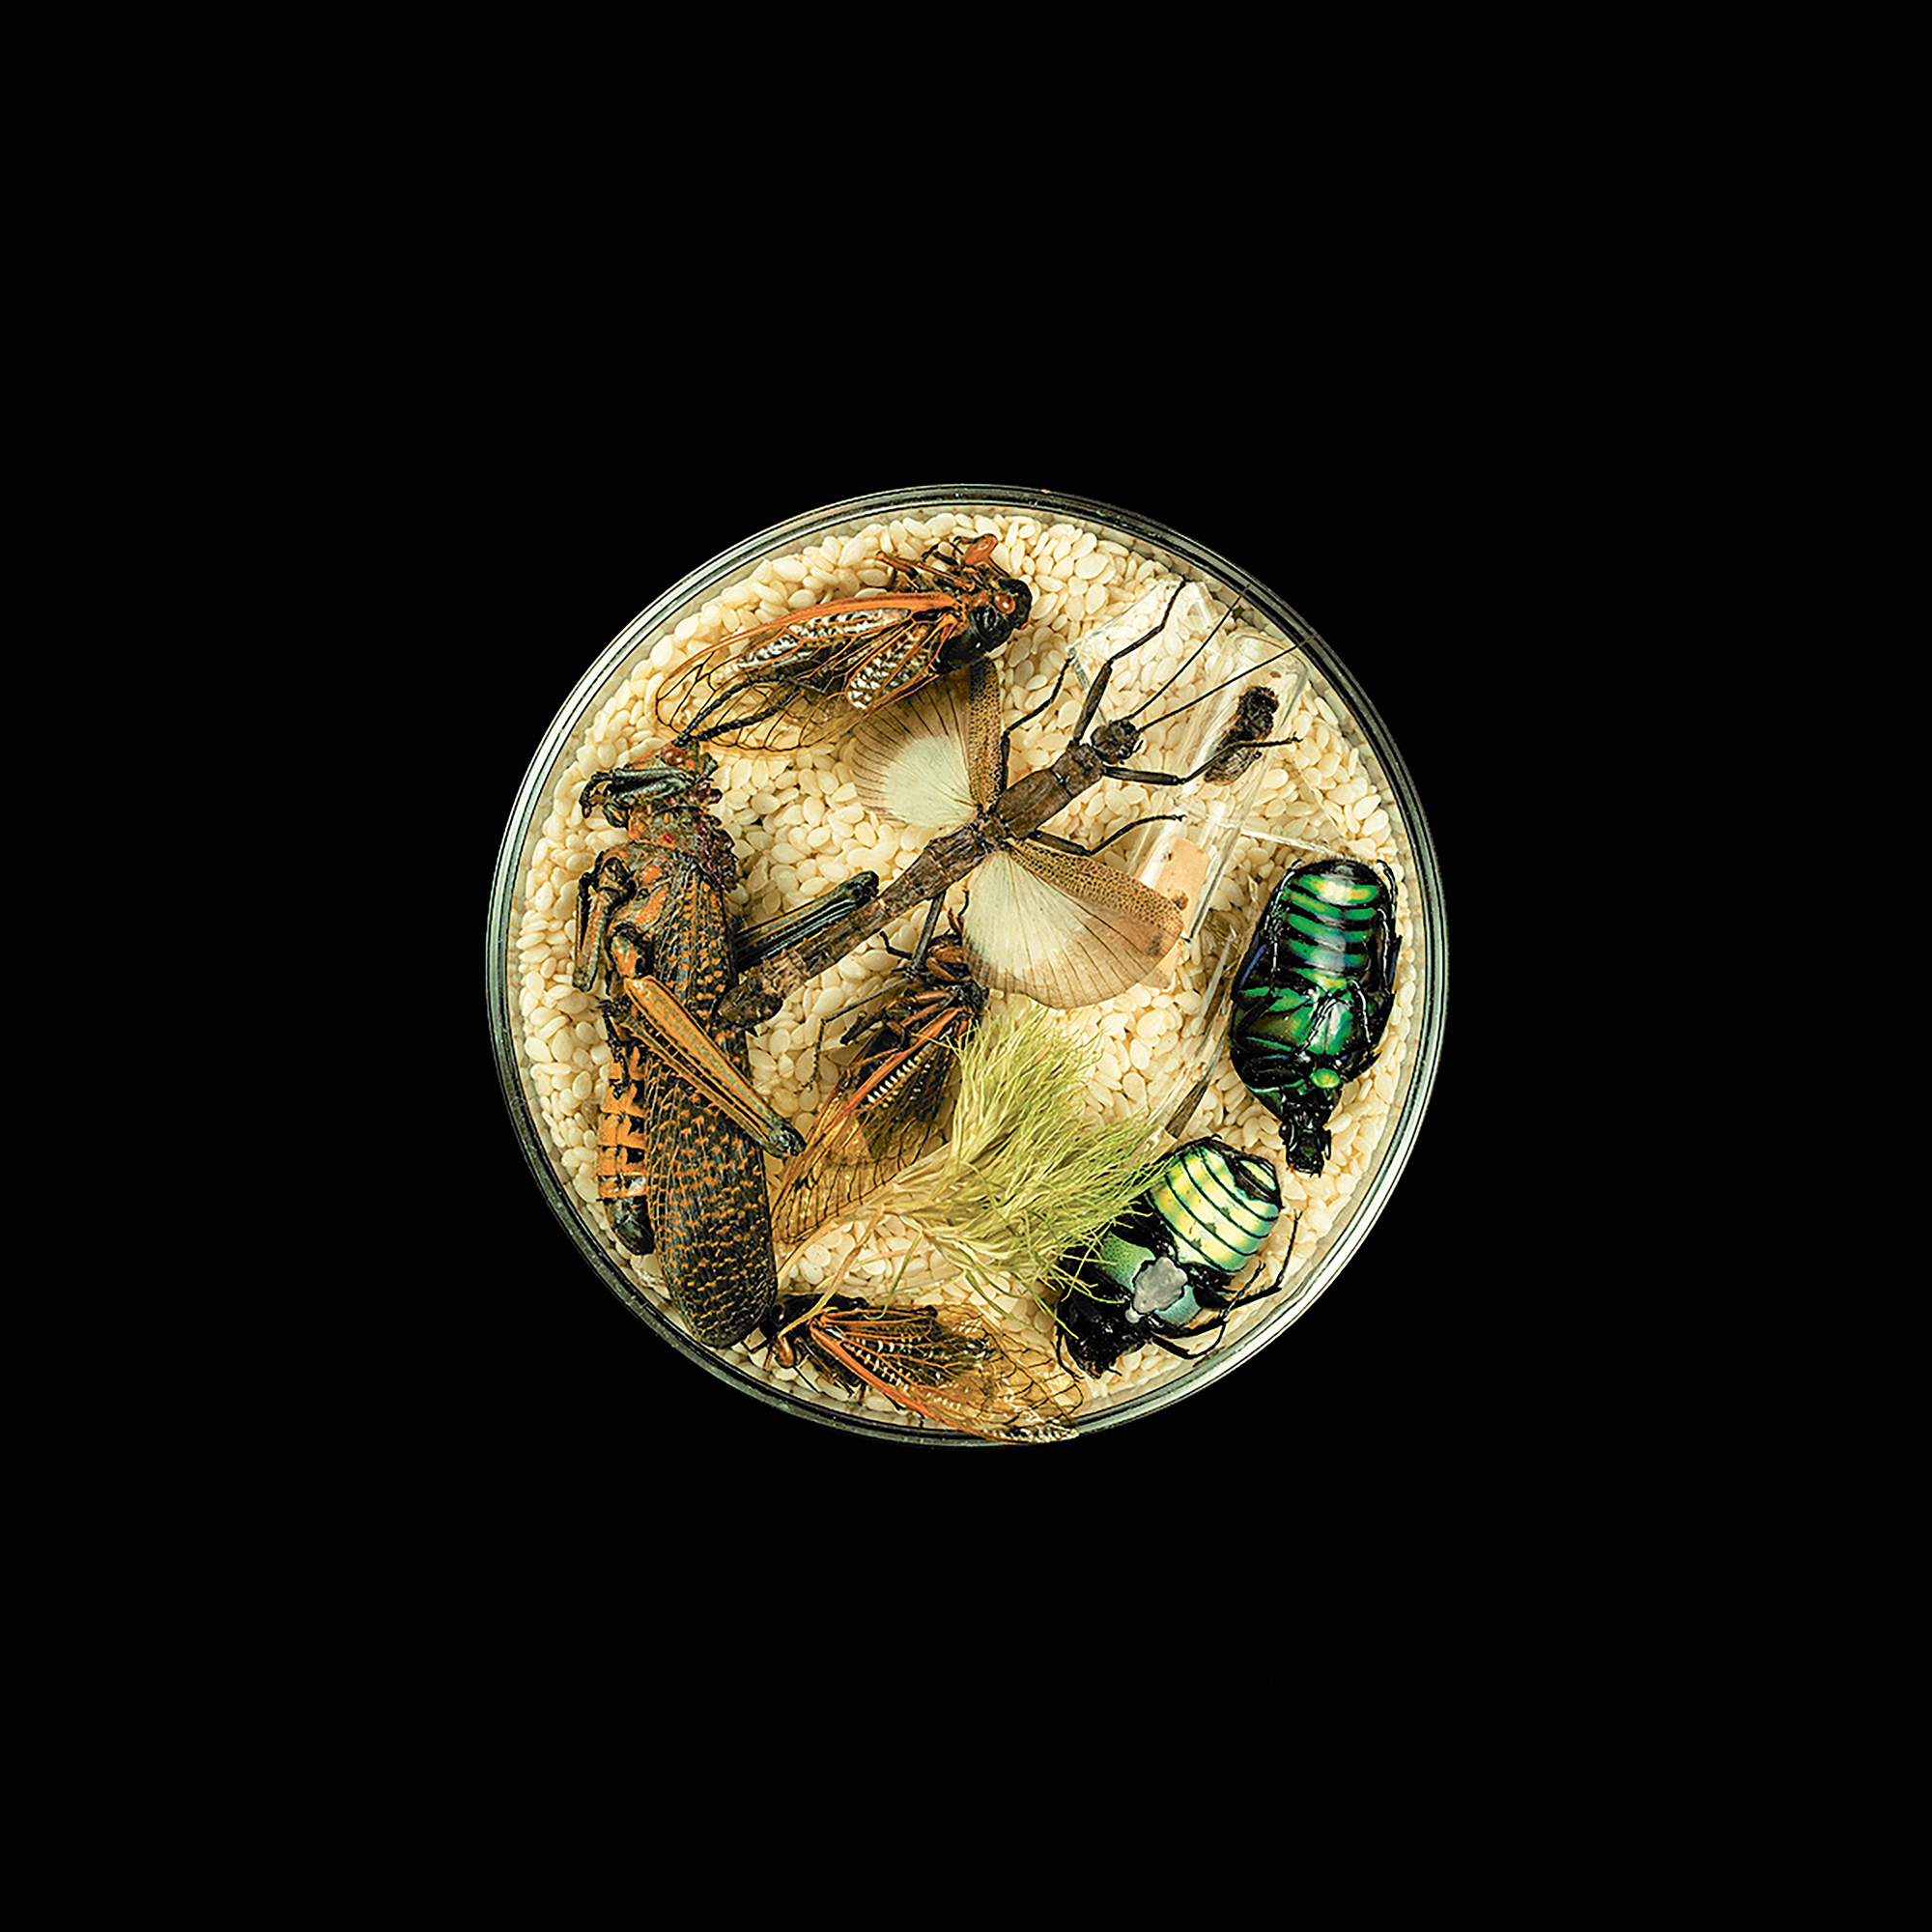 Suzanne Anker, Vanitas (in a Petri Dish) 29, 2013; from  Seeing Science  (Aperture and University of Maryland, Baltimore County, 2019)